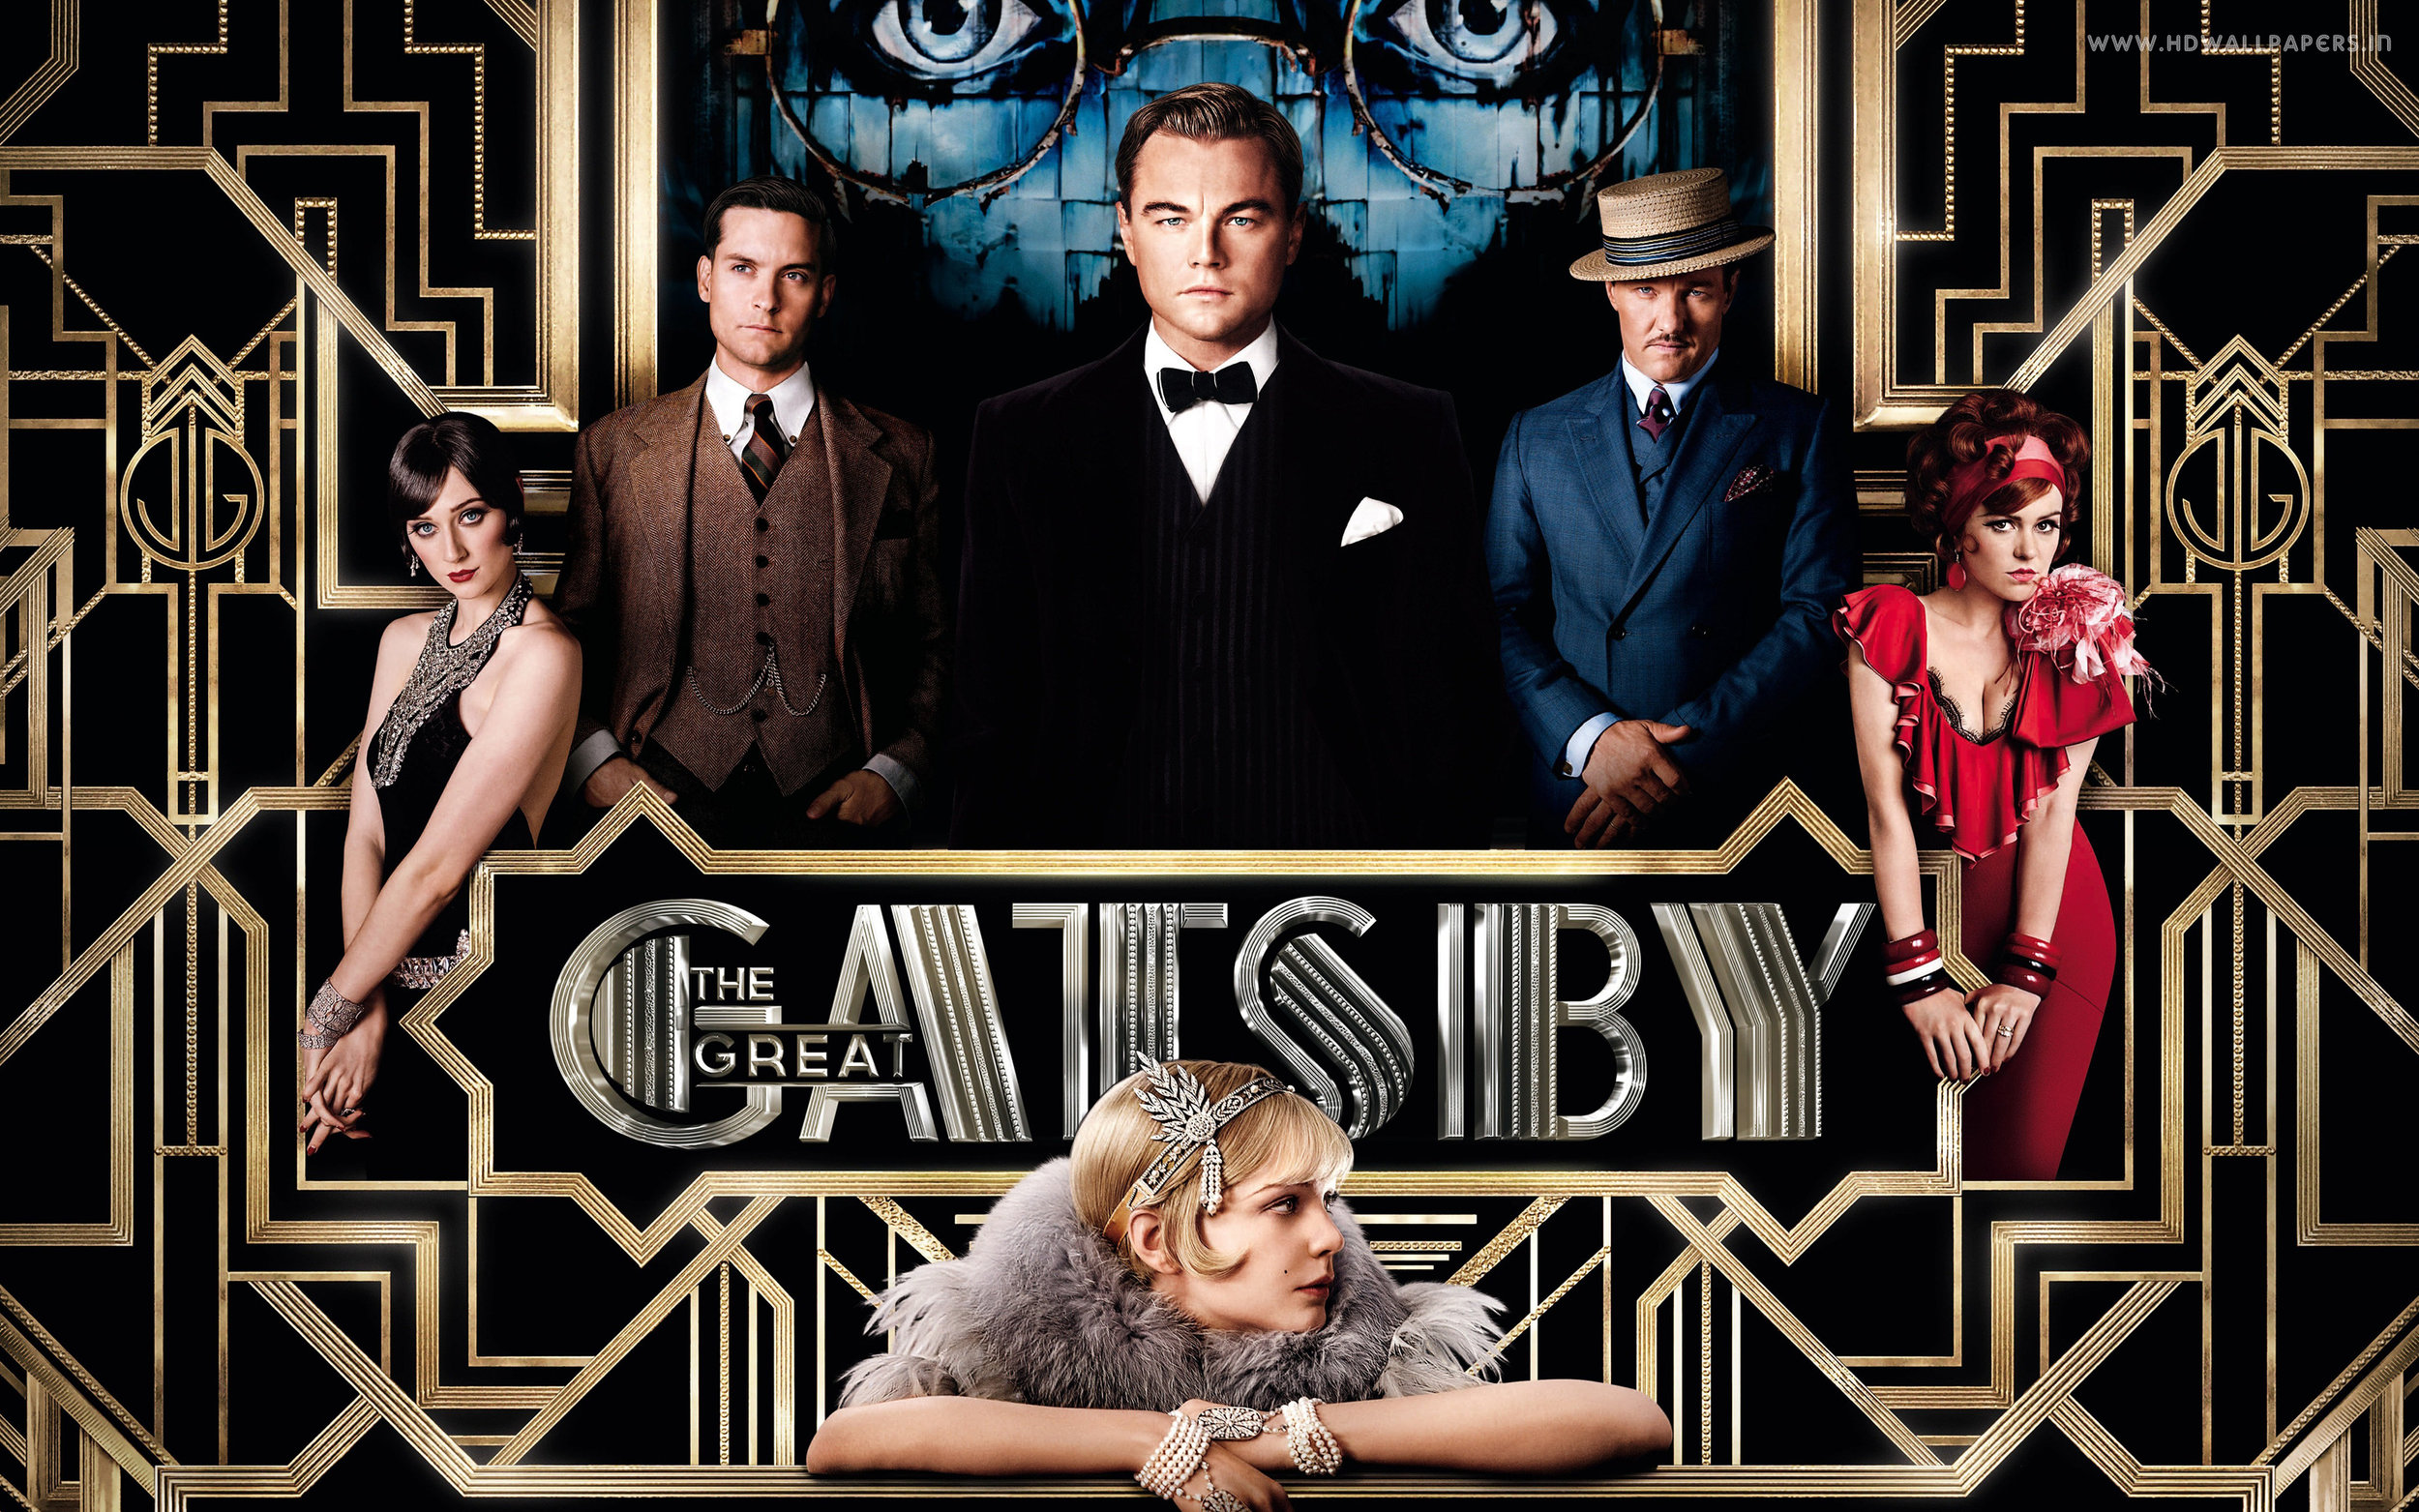 The Great Gatsby(2013)    Won: Best Costume Design    Won: Best Production Design